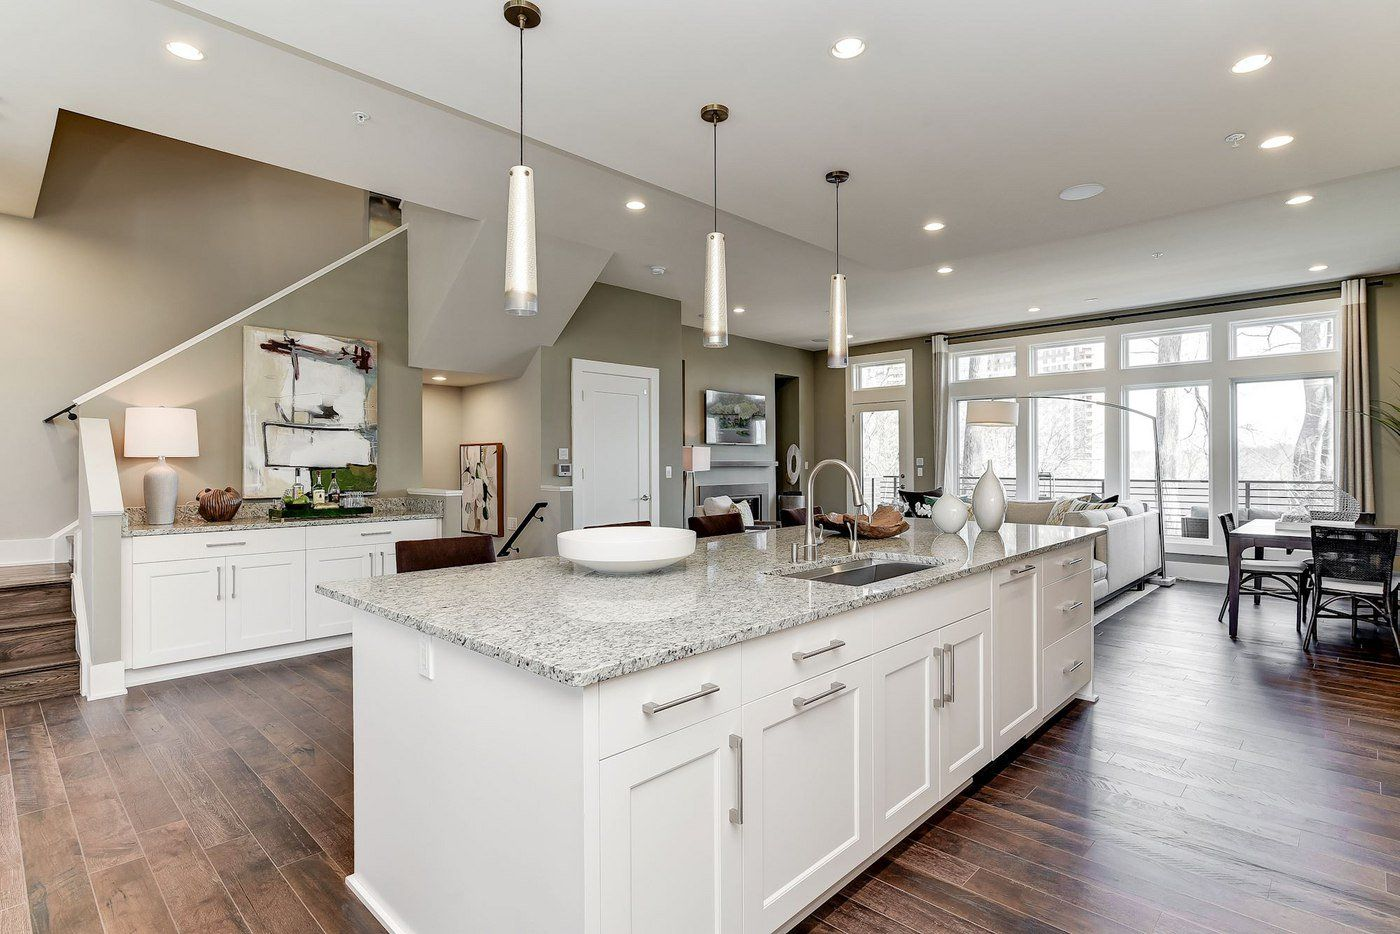 Pin by Stephen Greenberg on TOWNHOMES in 2019 Townhouse